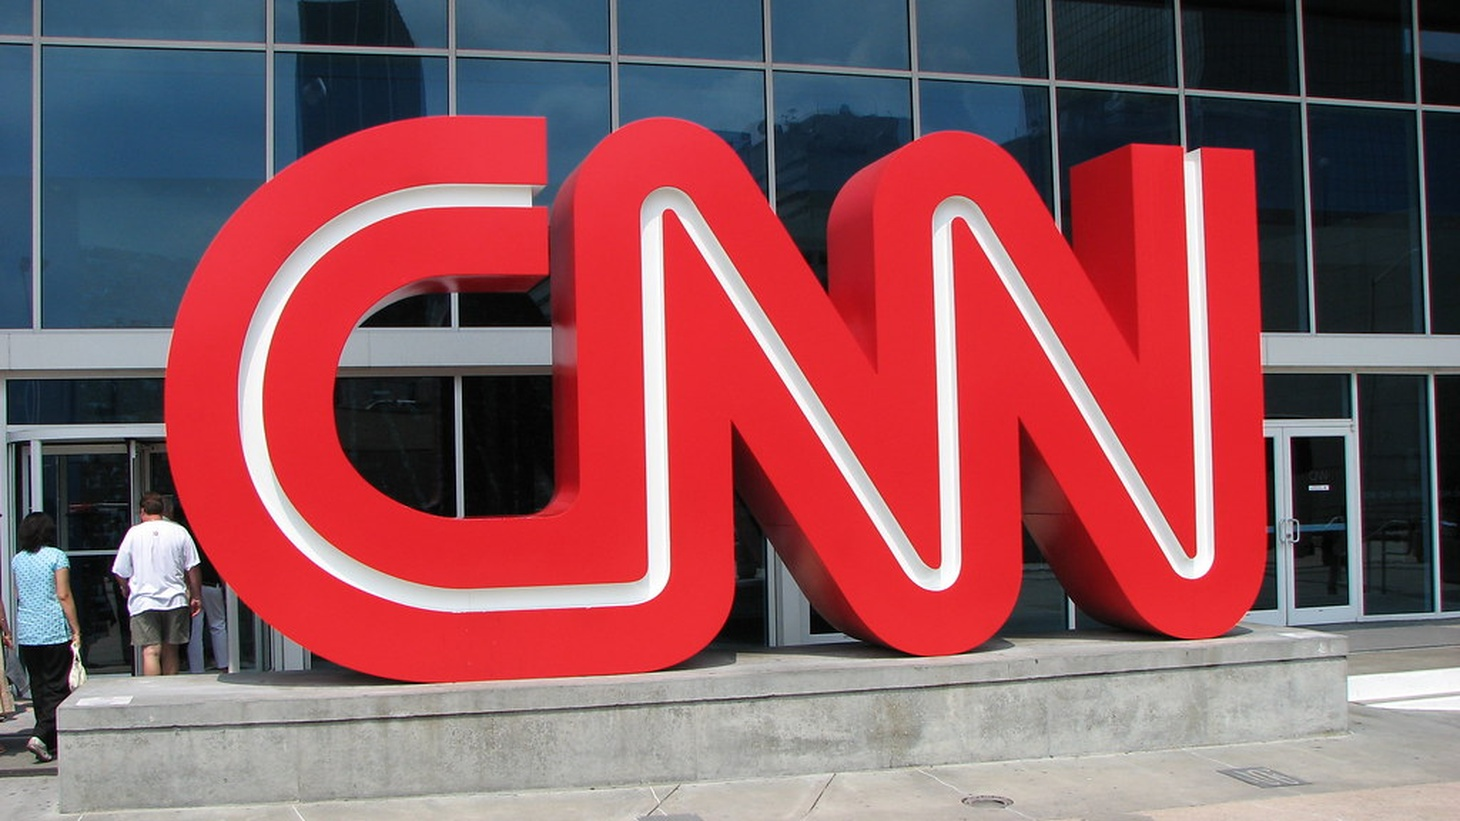 After a news-filled January, CNN took the top spot in cable news ratings, while Fox News fell to number three. The future of both networks remains an open question.